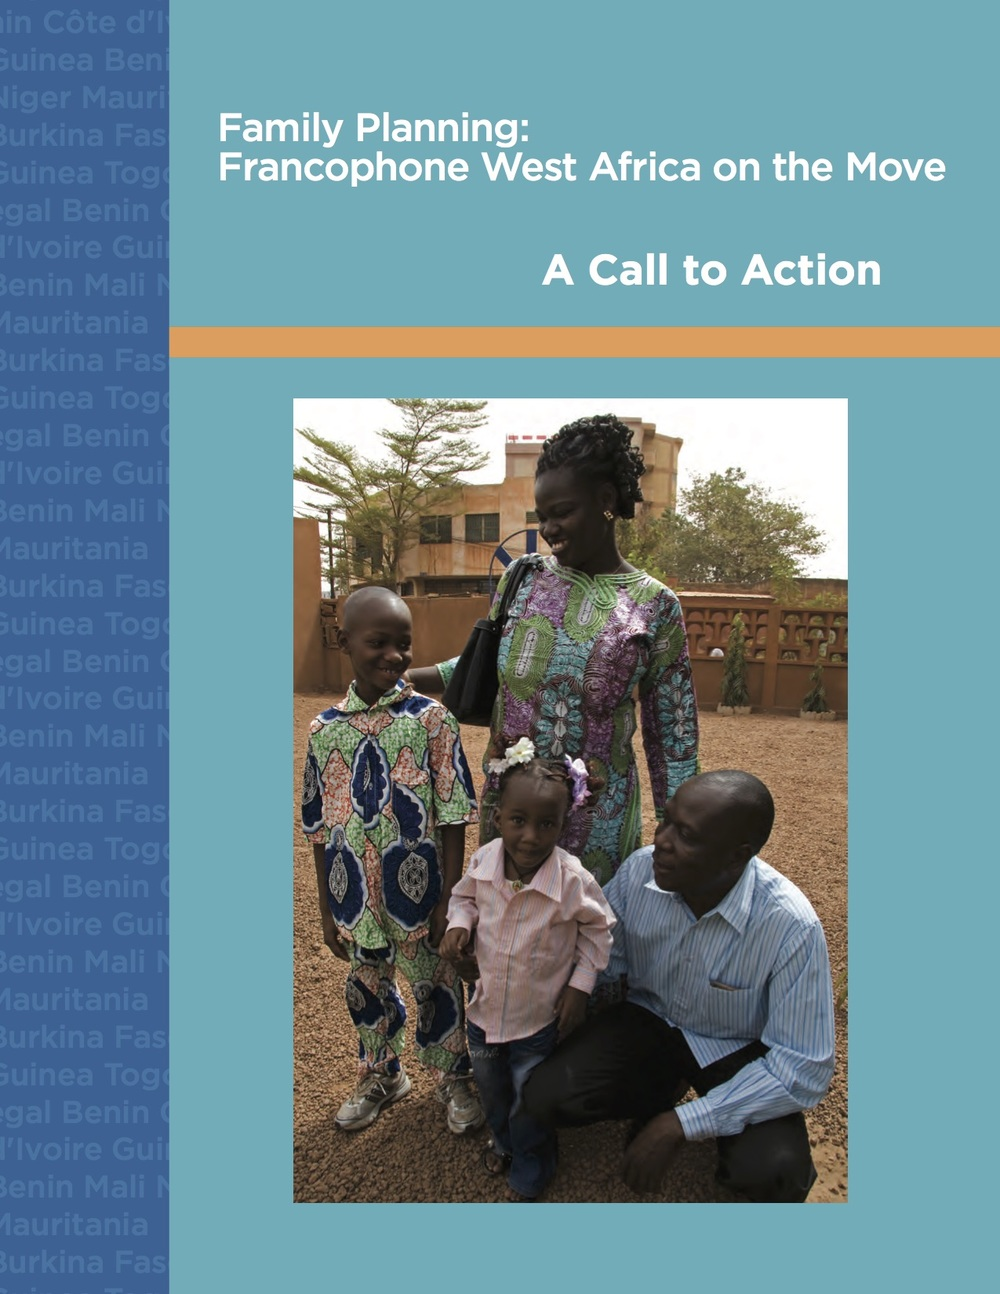 Family Planning: Francophone West Africa on the Move